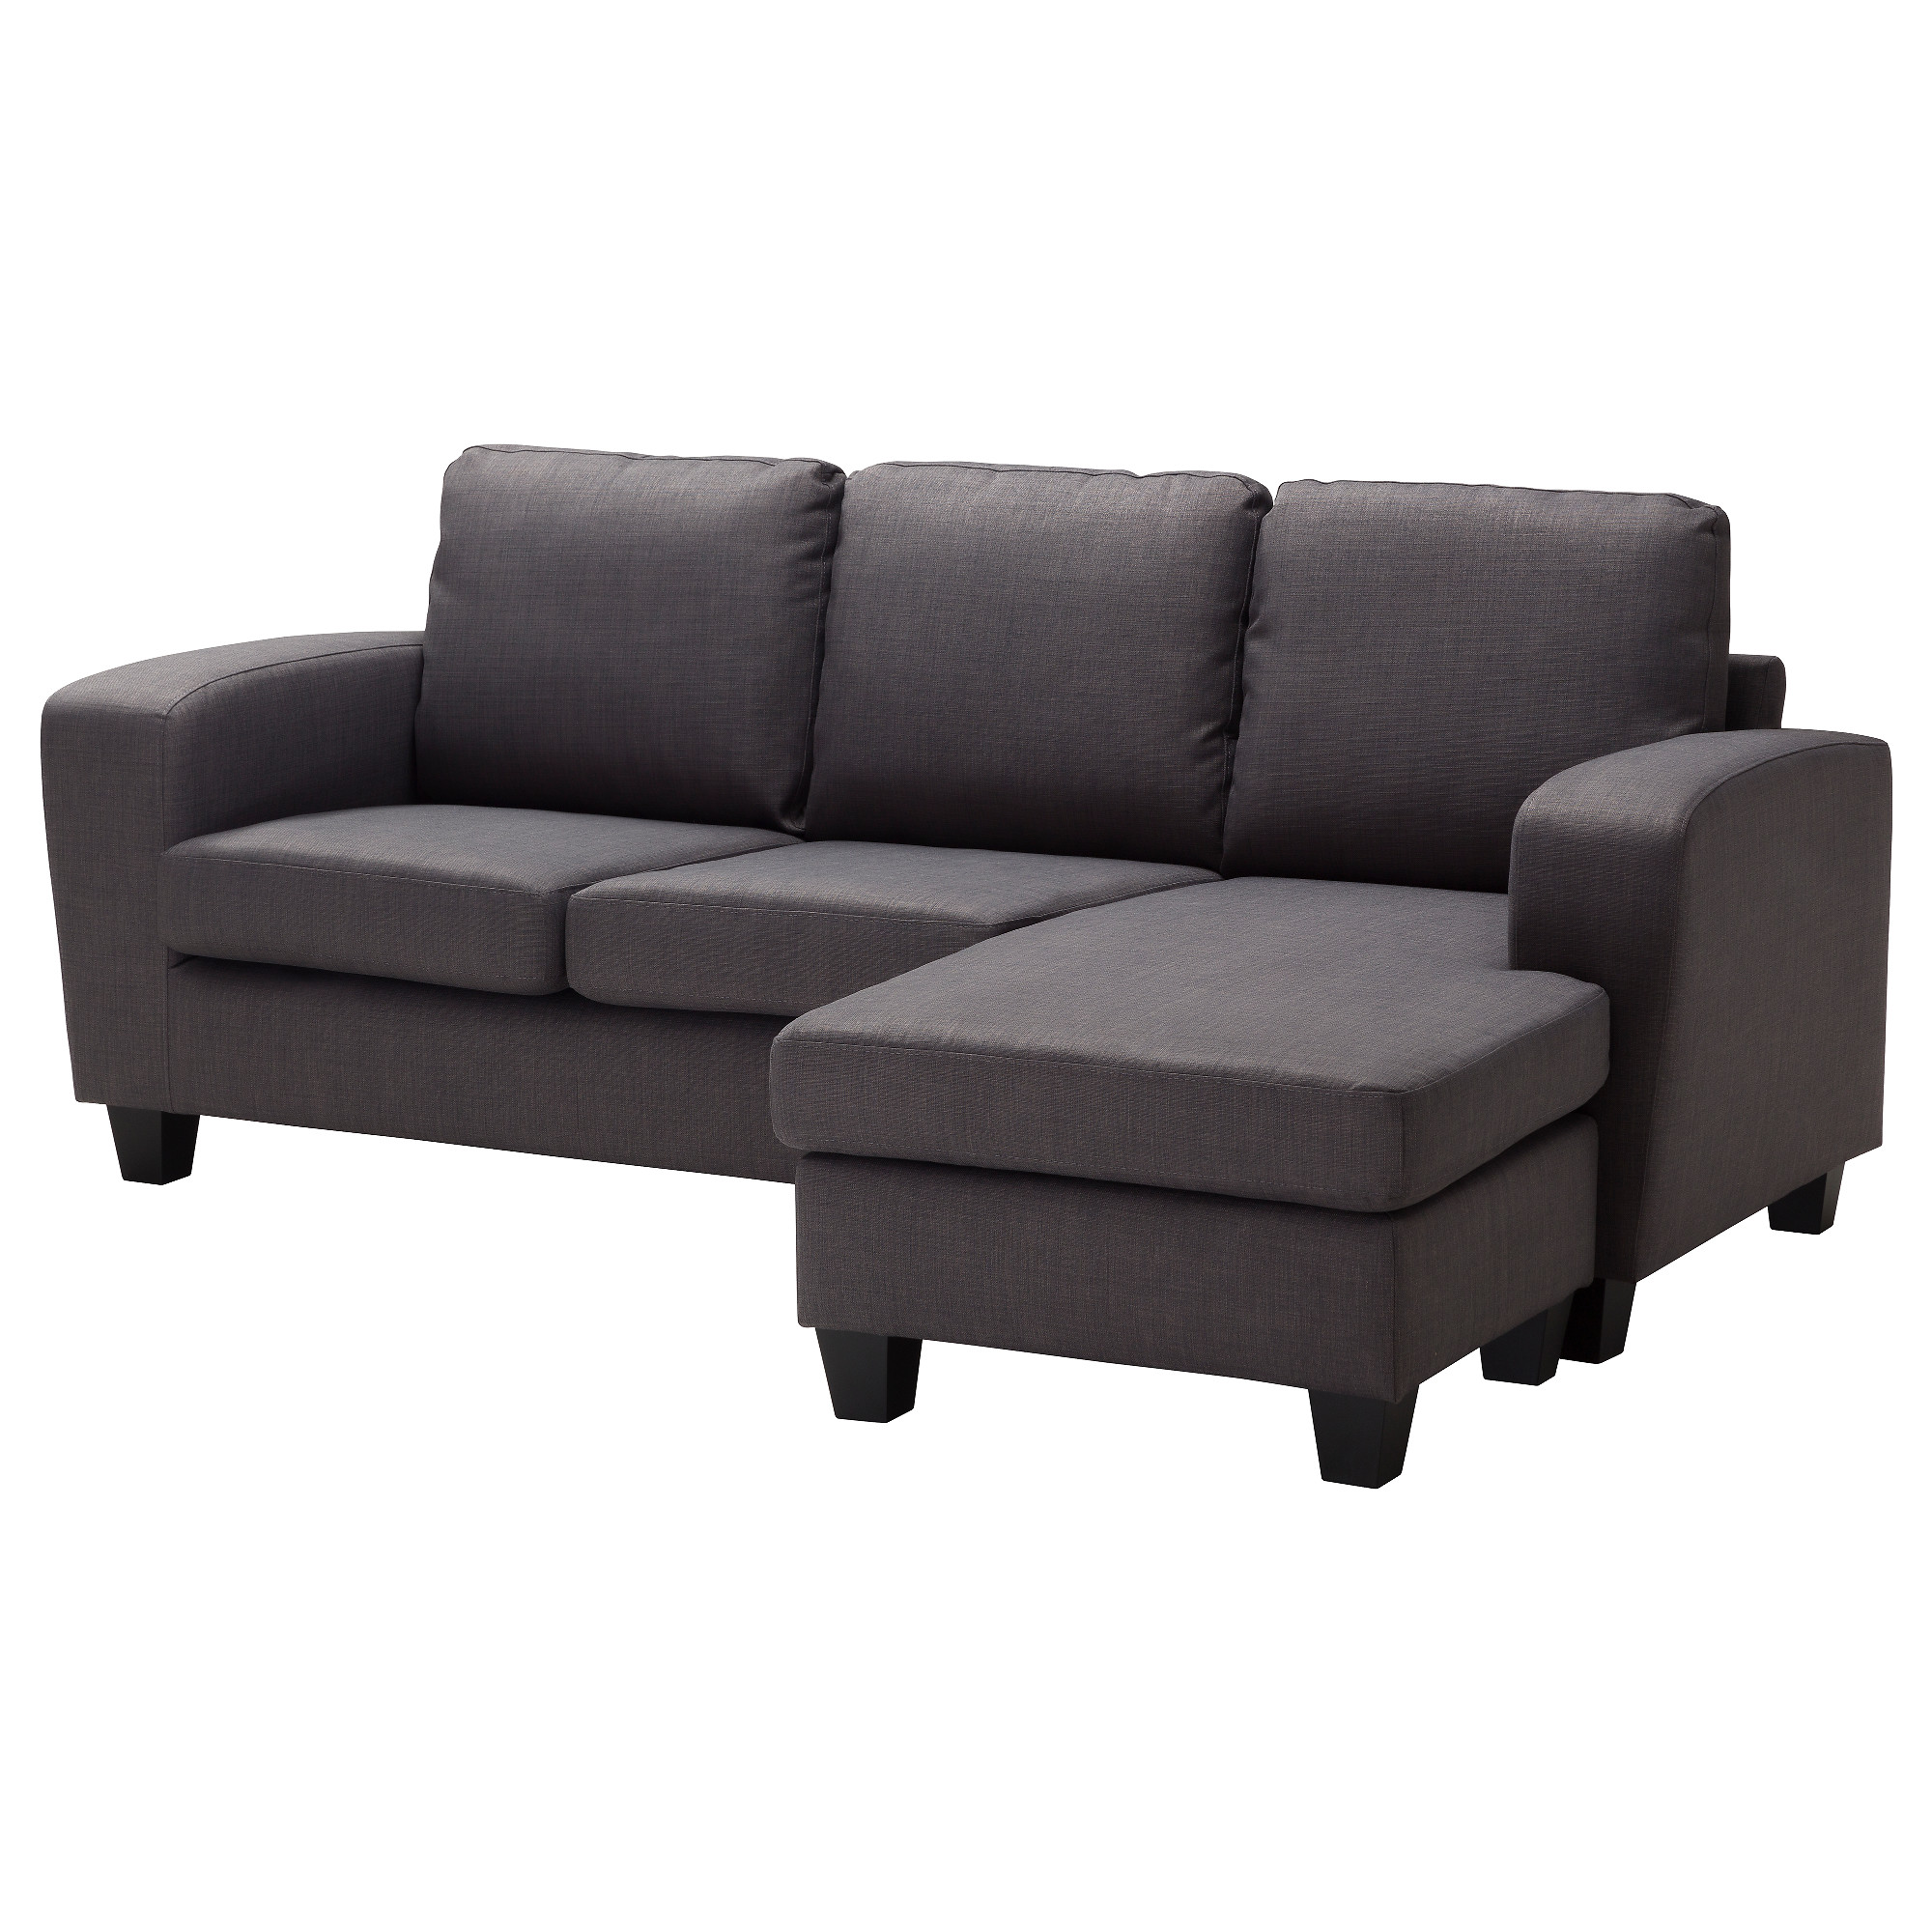 BALDERUM Two-seat sofa with chaise longue - Skiftebo dark grey - IKEA